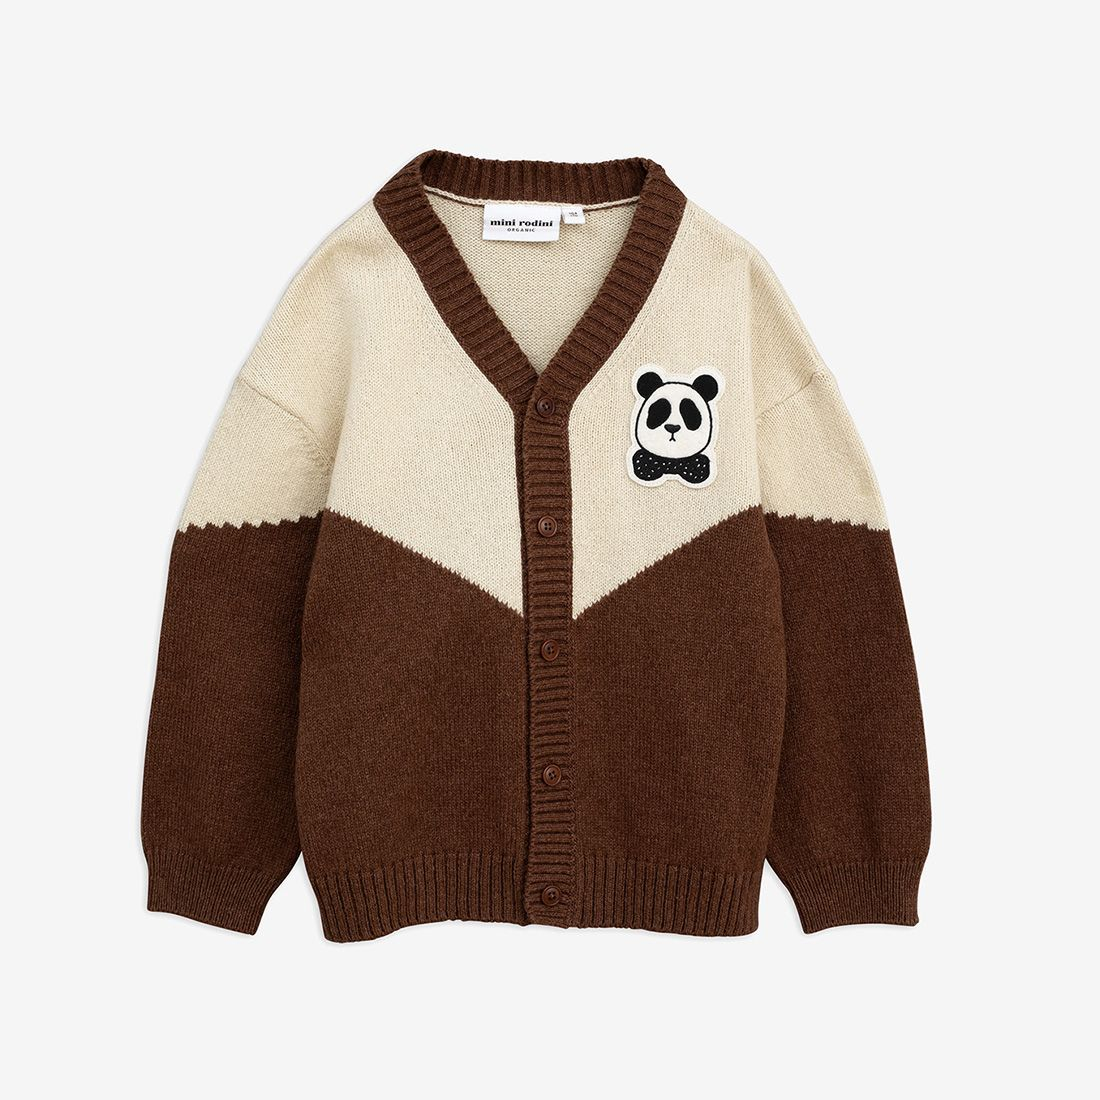 Pretty Panda Knitted Wool Cardigan